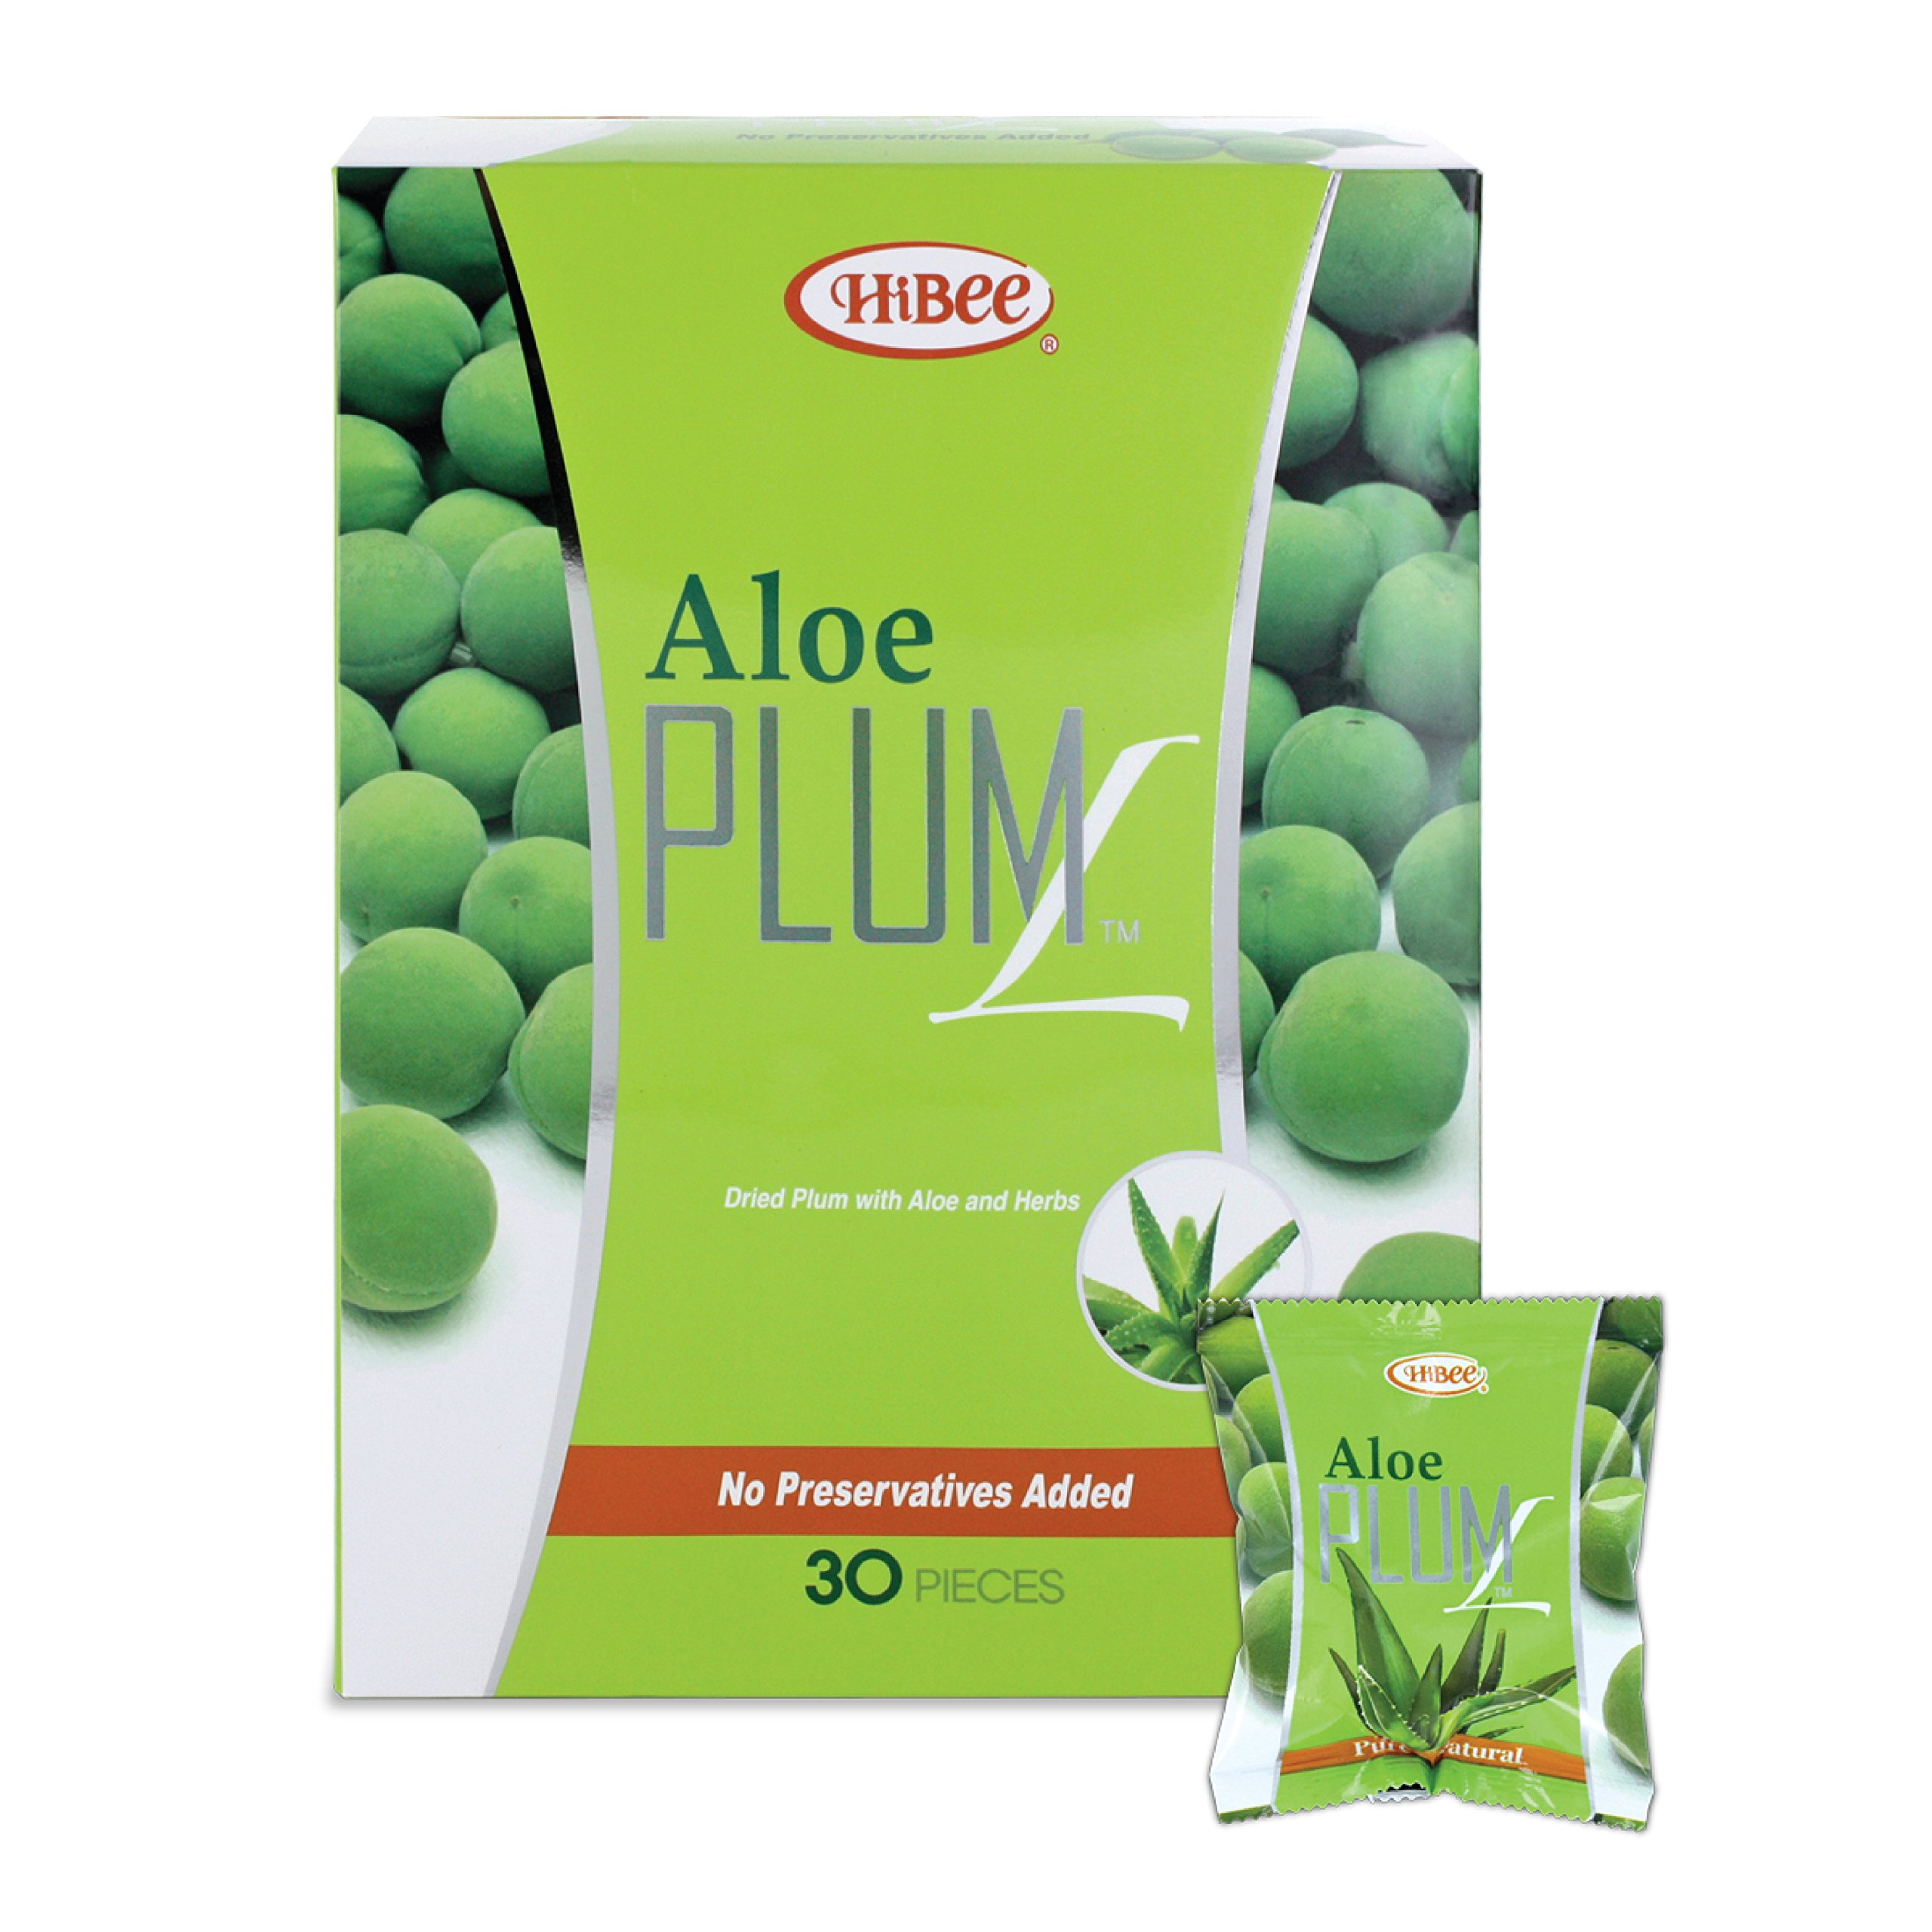 HiBee Aloe Plum L Constipation Relief - Dried Plums with Aloe & Herbs - All-Natural Laxative & Colon Detox Cleanse - Whole Food Laxative, Promotes Healthy Weight Loss & Fat Burning - Pack of 30